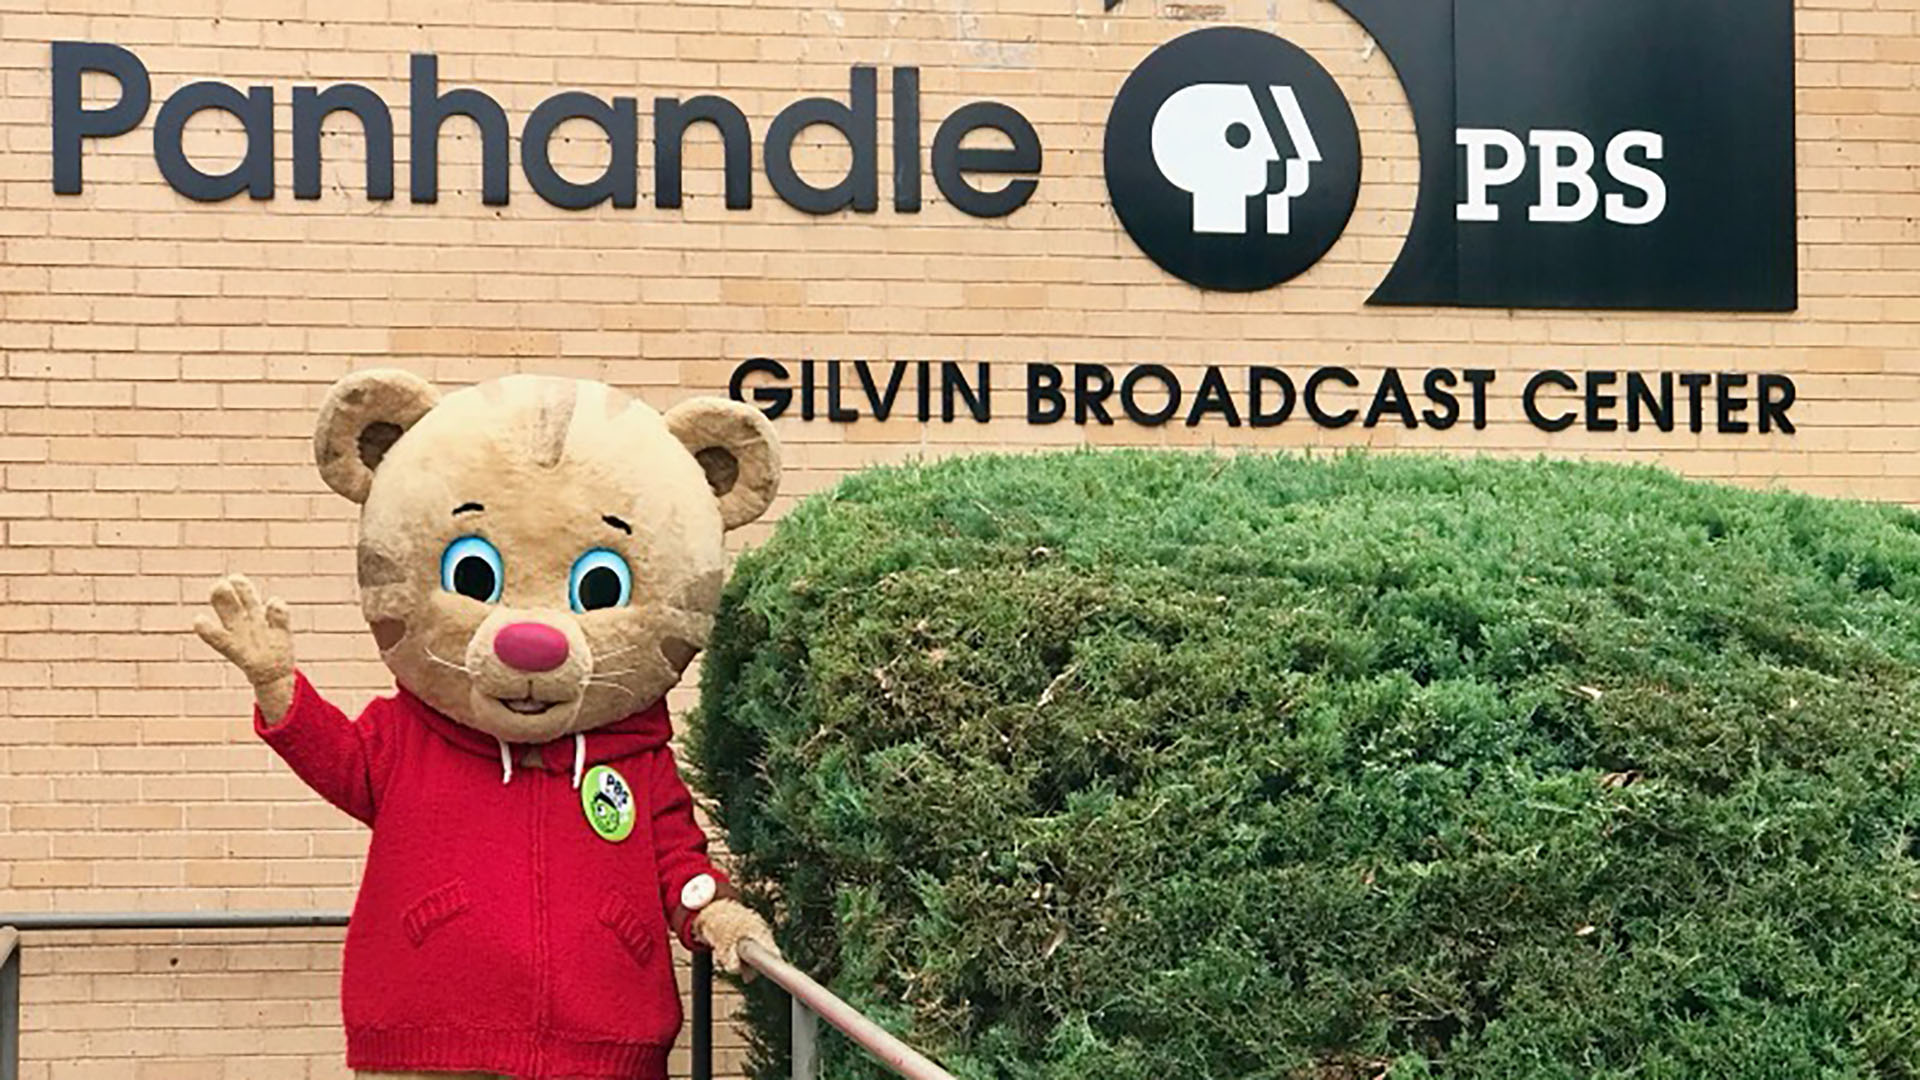 Daniel Tiger will return to Panhandle in May